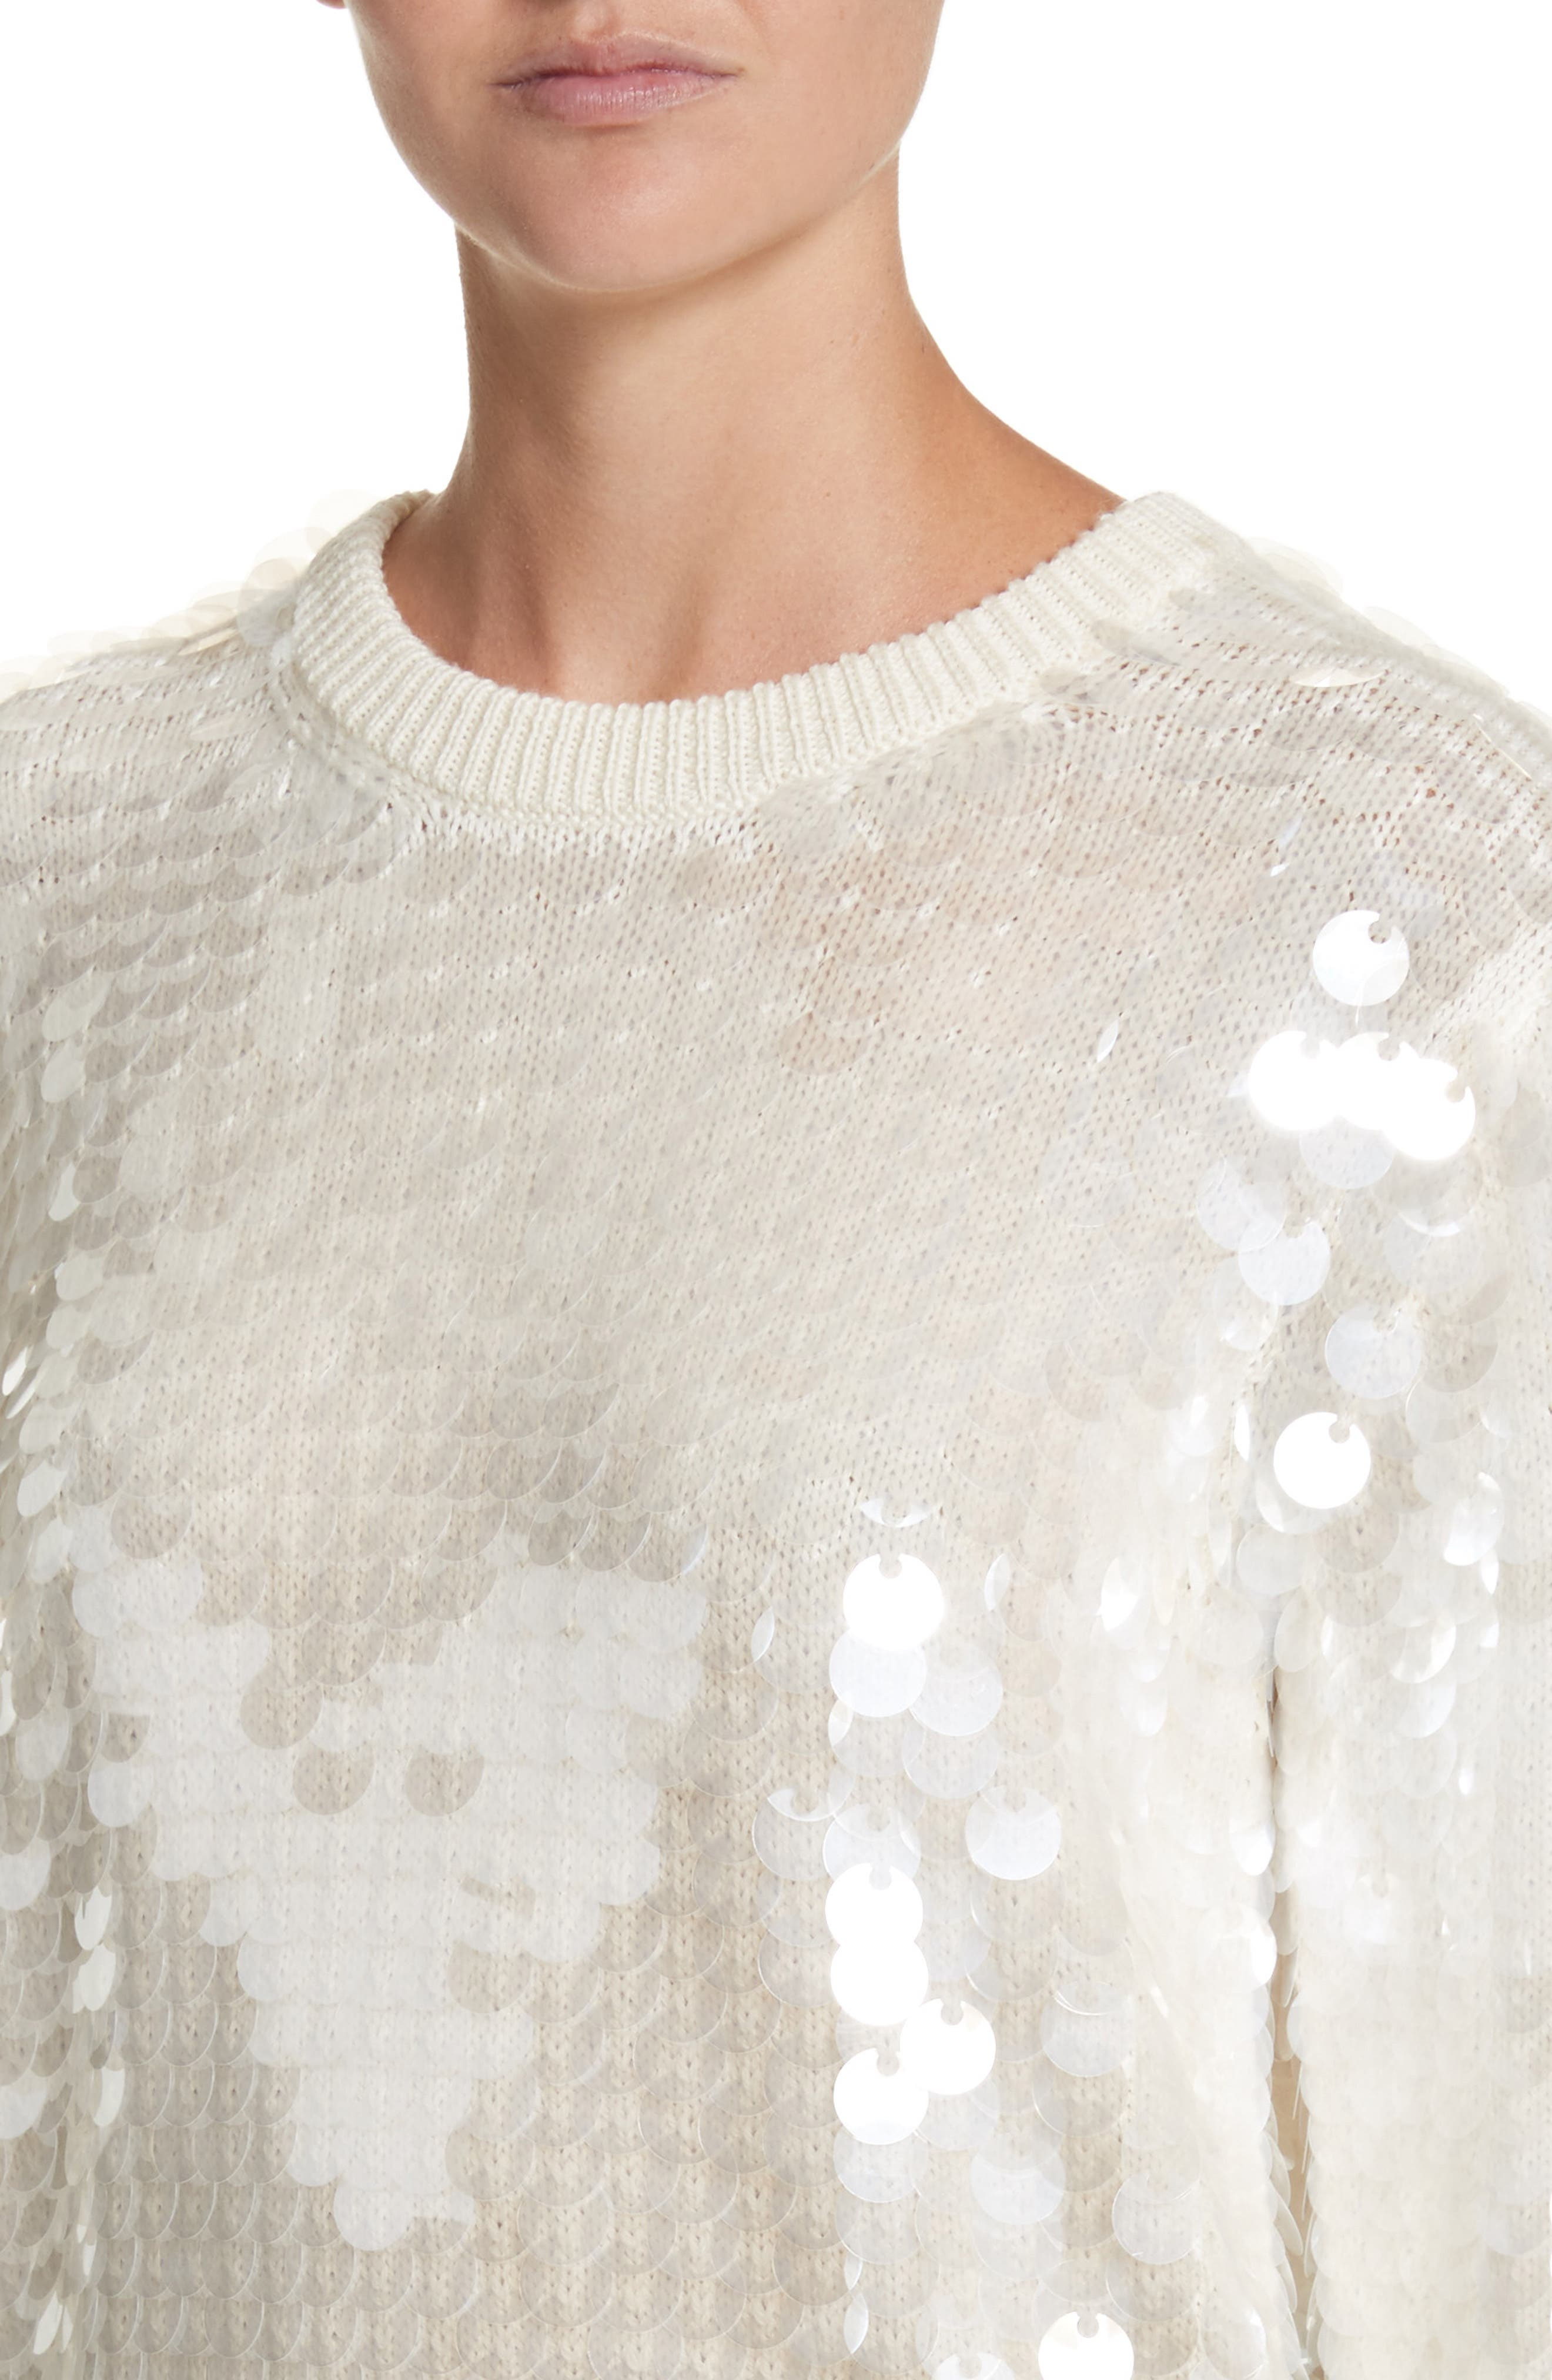 Sequin Wool Sweater,                             Alternate thumbnail 4, color,                             Ivory